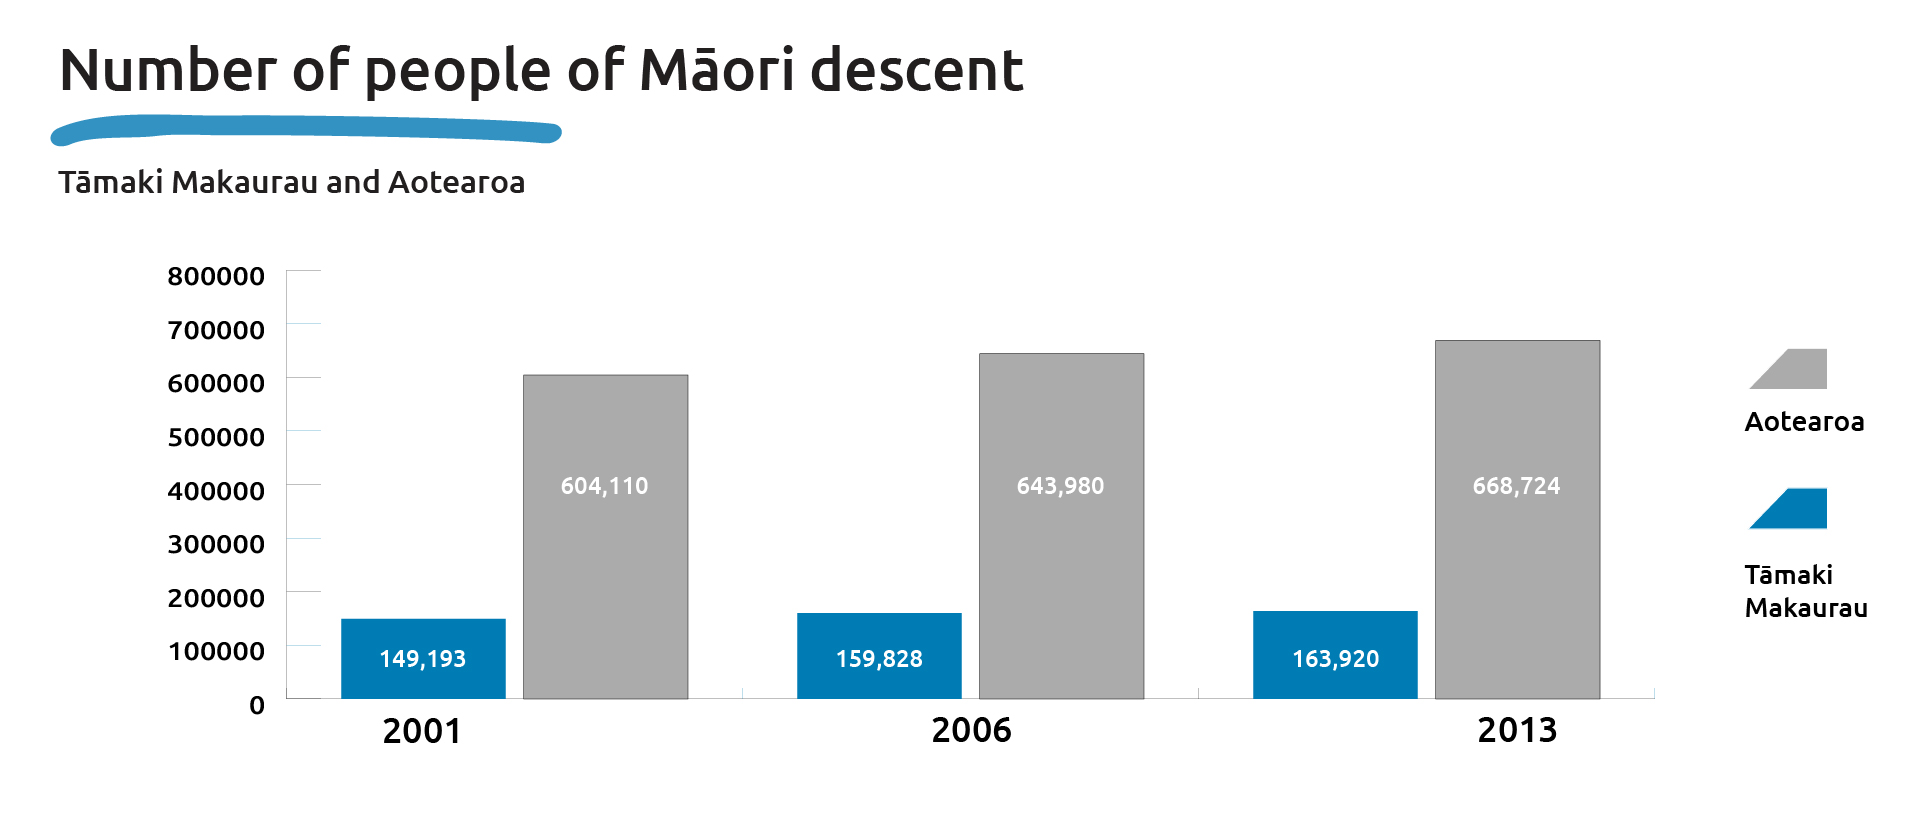 Graph that shows the number of people of Maori descent, Tamaki Makaurau and Aotearoa 2001, 2006, 2013